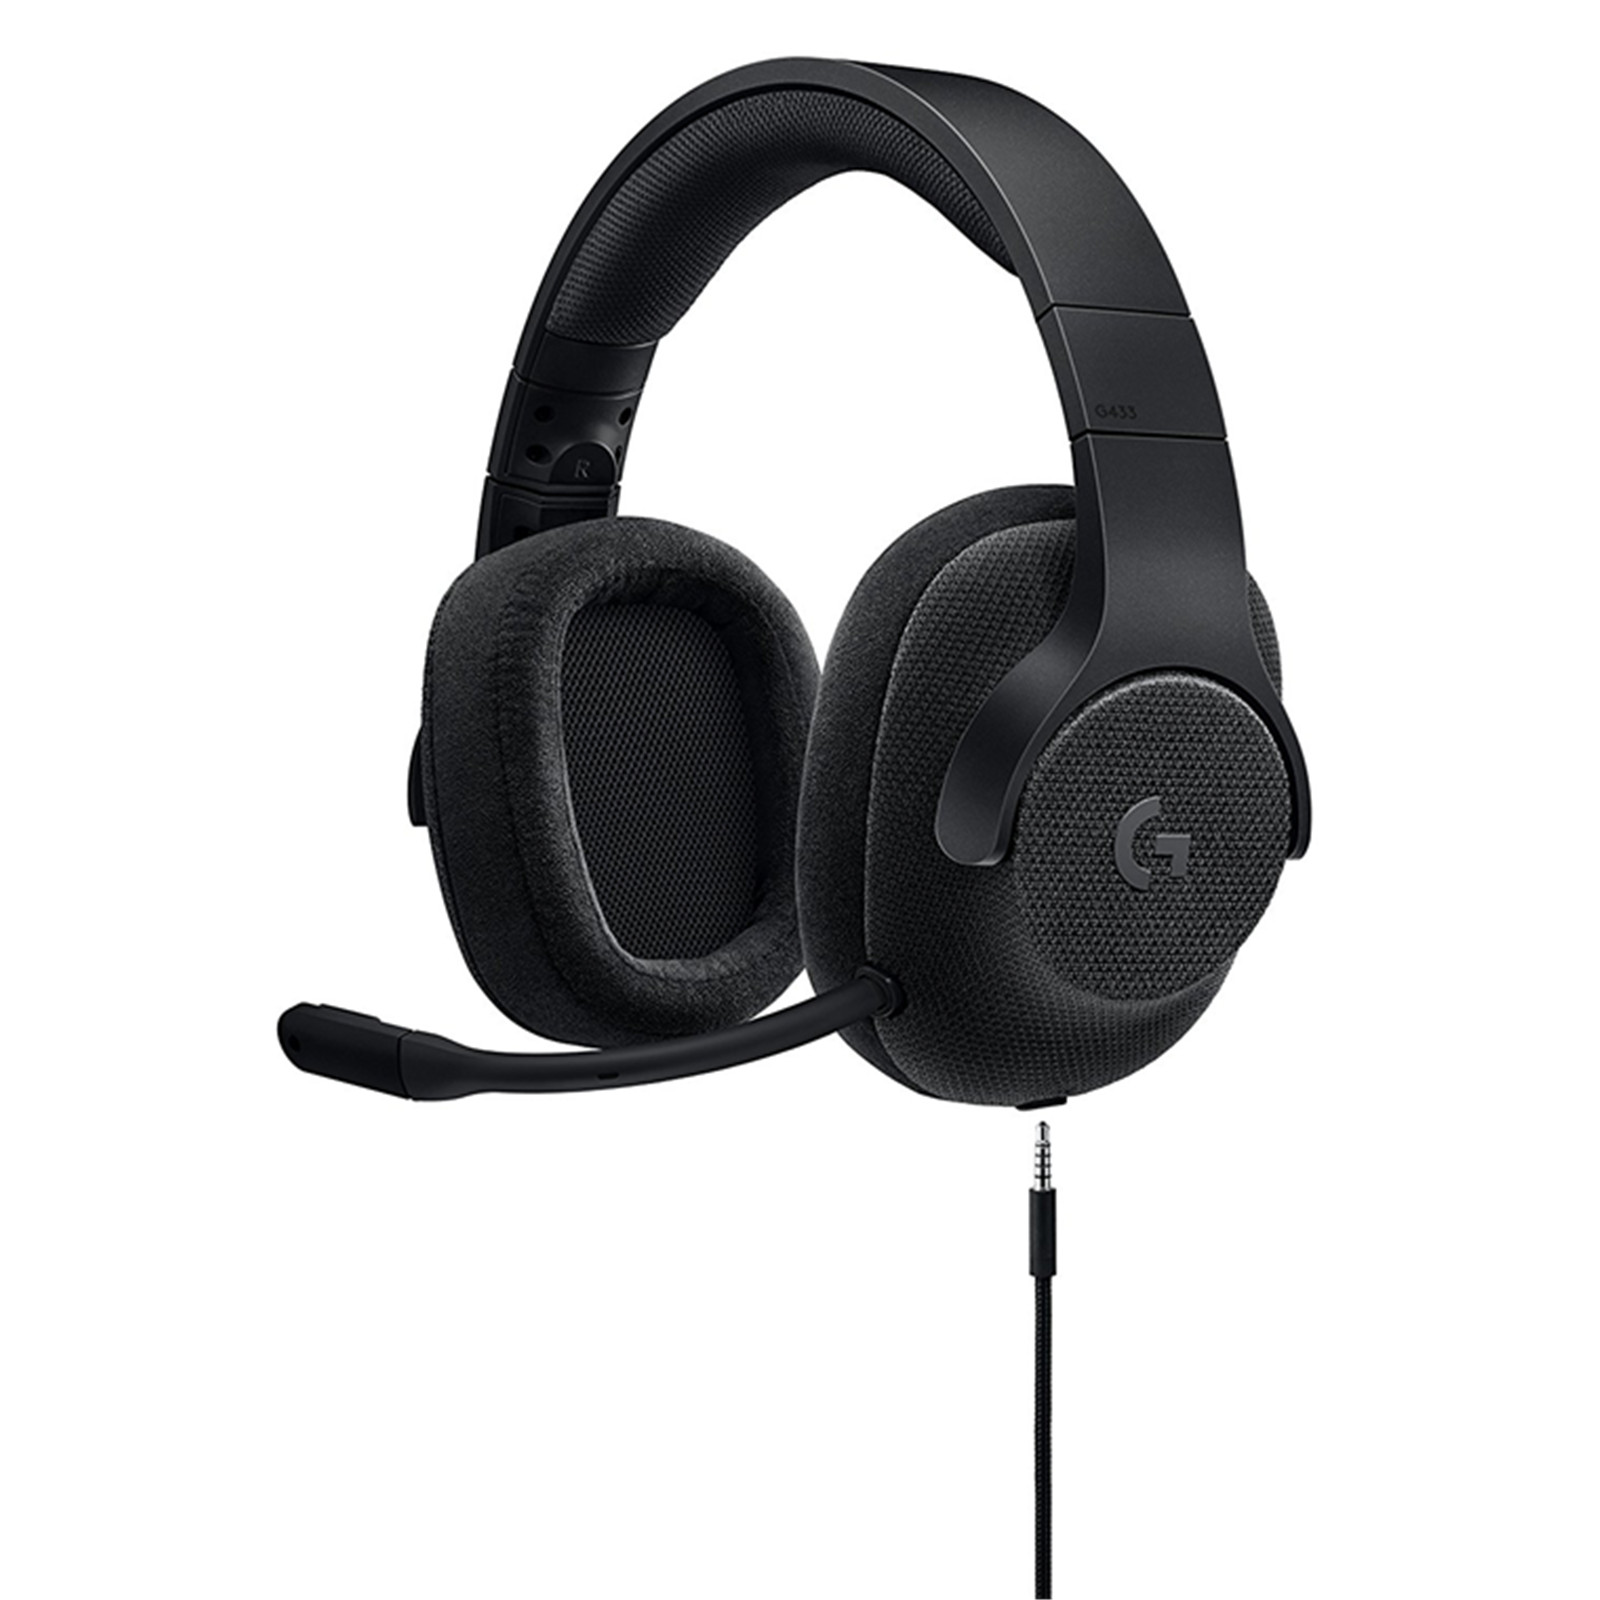 2b4c4177c4b Logitech G433 7.1 Surround Sound USB Gaming Headset - Black, PC and Console  Compatible.